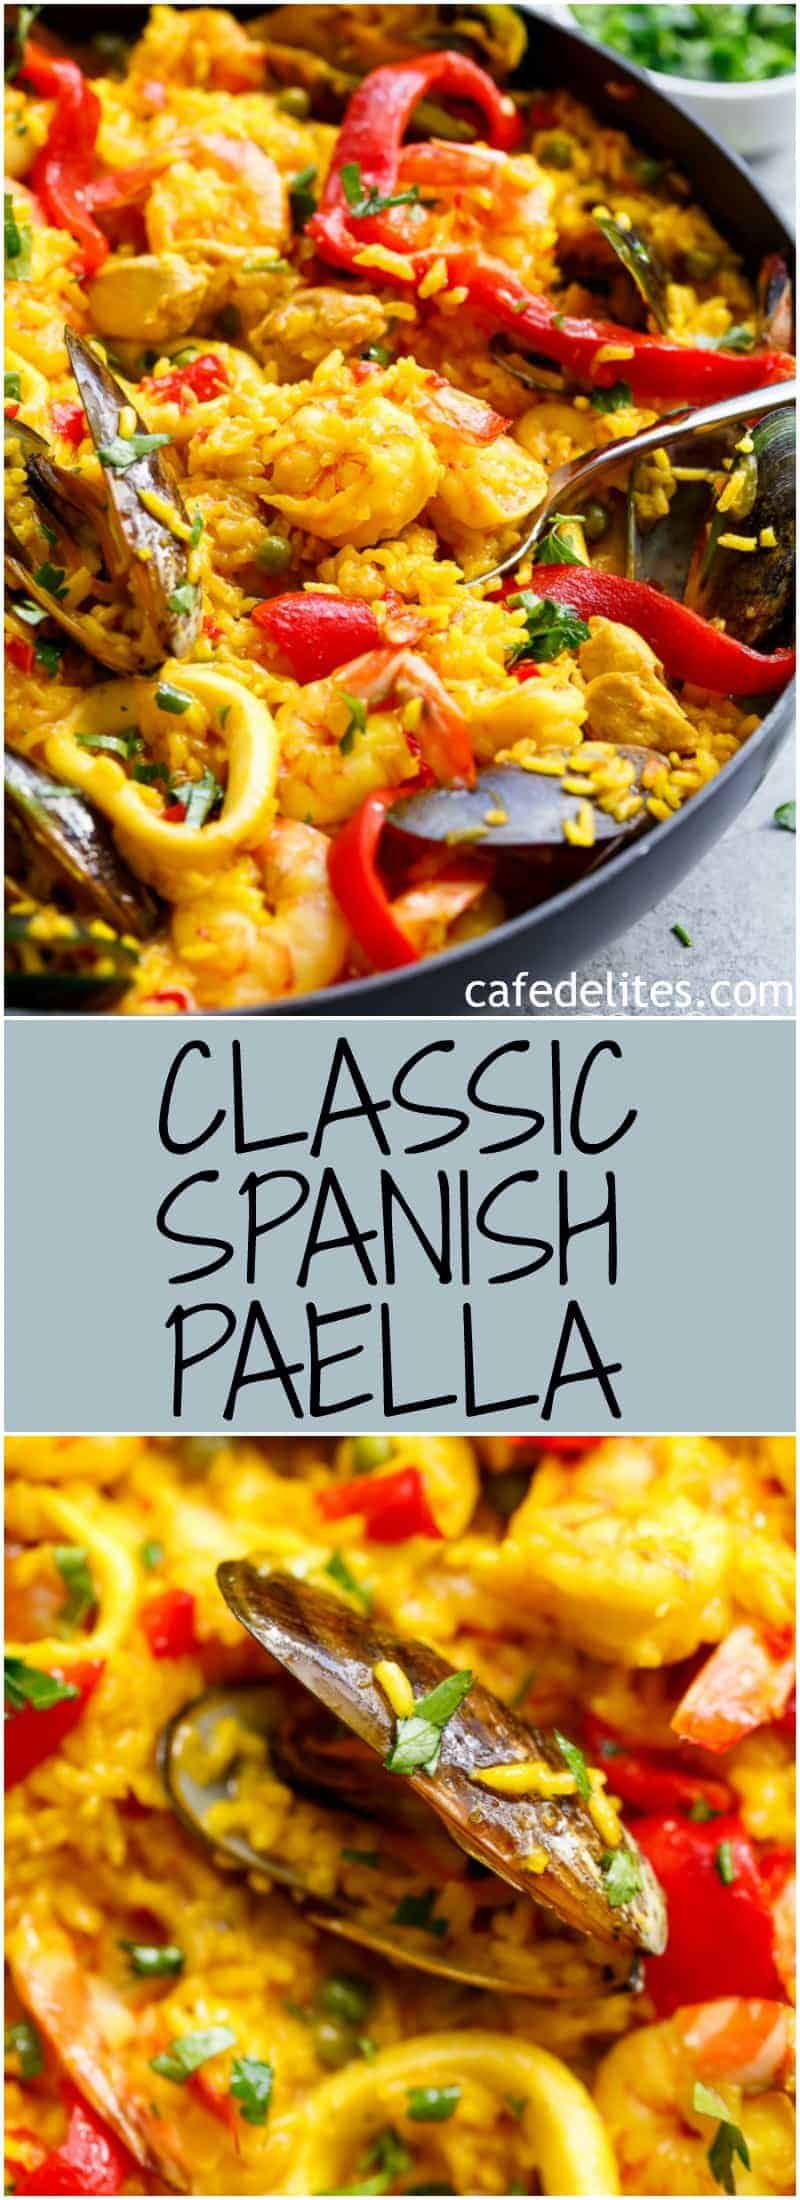 This Classic Spanish Paella rivals any restaurant paella! Sometimes nothing compares to good home cooking, and recipe by a beloved mother   https://cafedelites.com